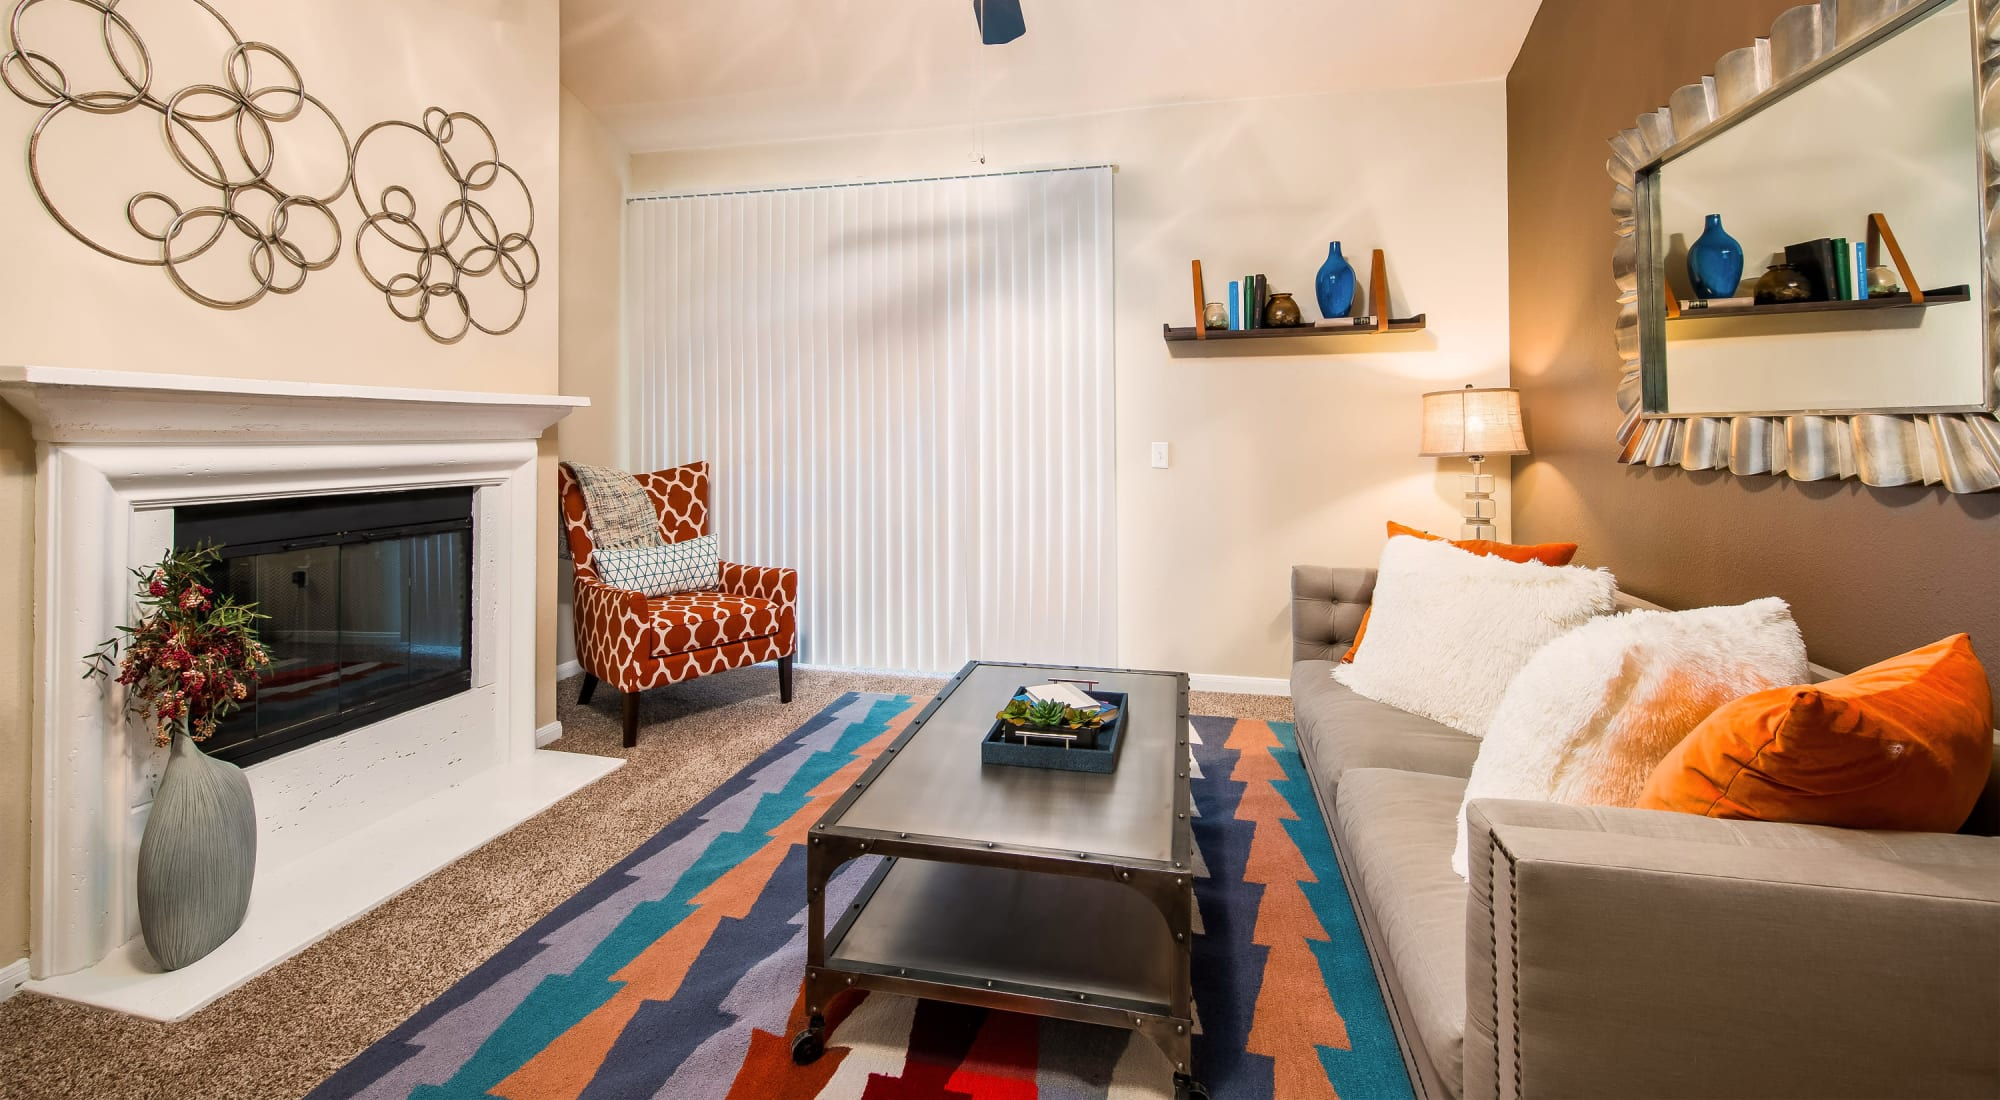 Apartments at Reserve at Pebble Creek in Plano, Texas